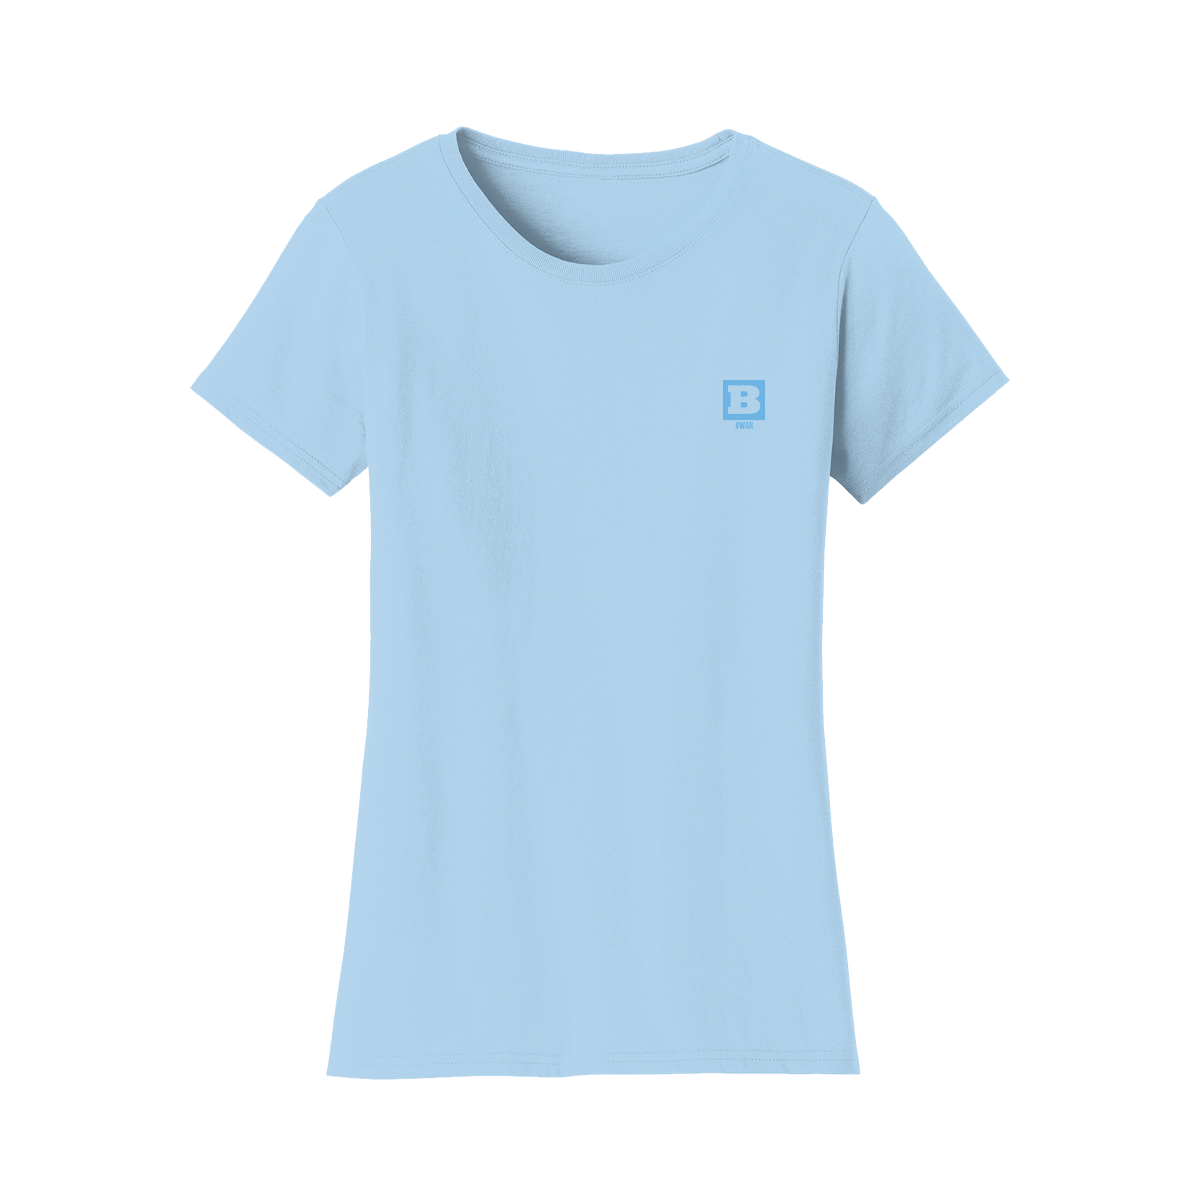 #WAR Women's T-Shirt - Light Blue